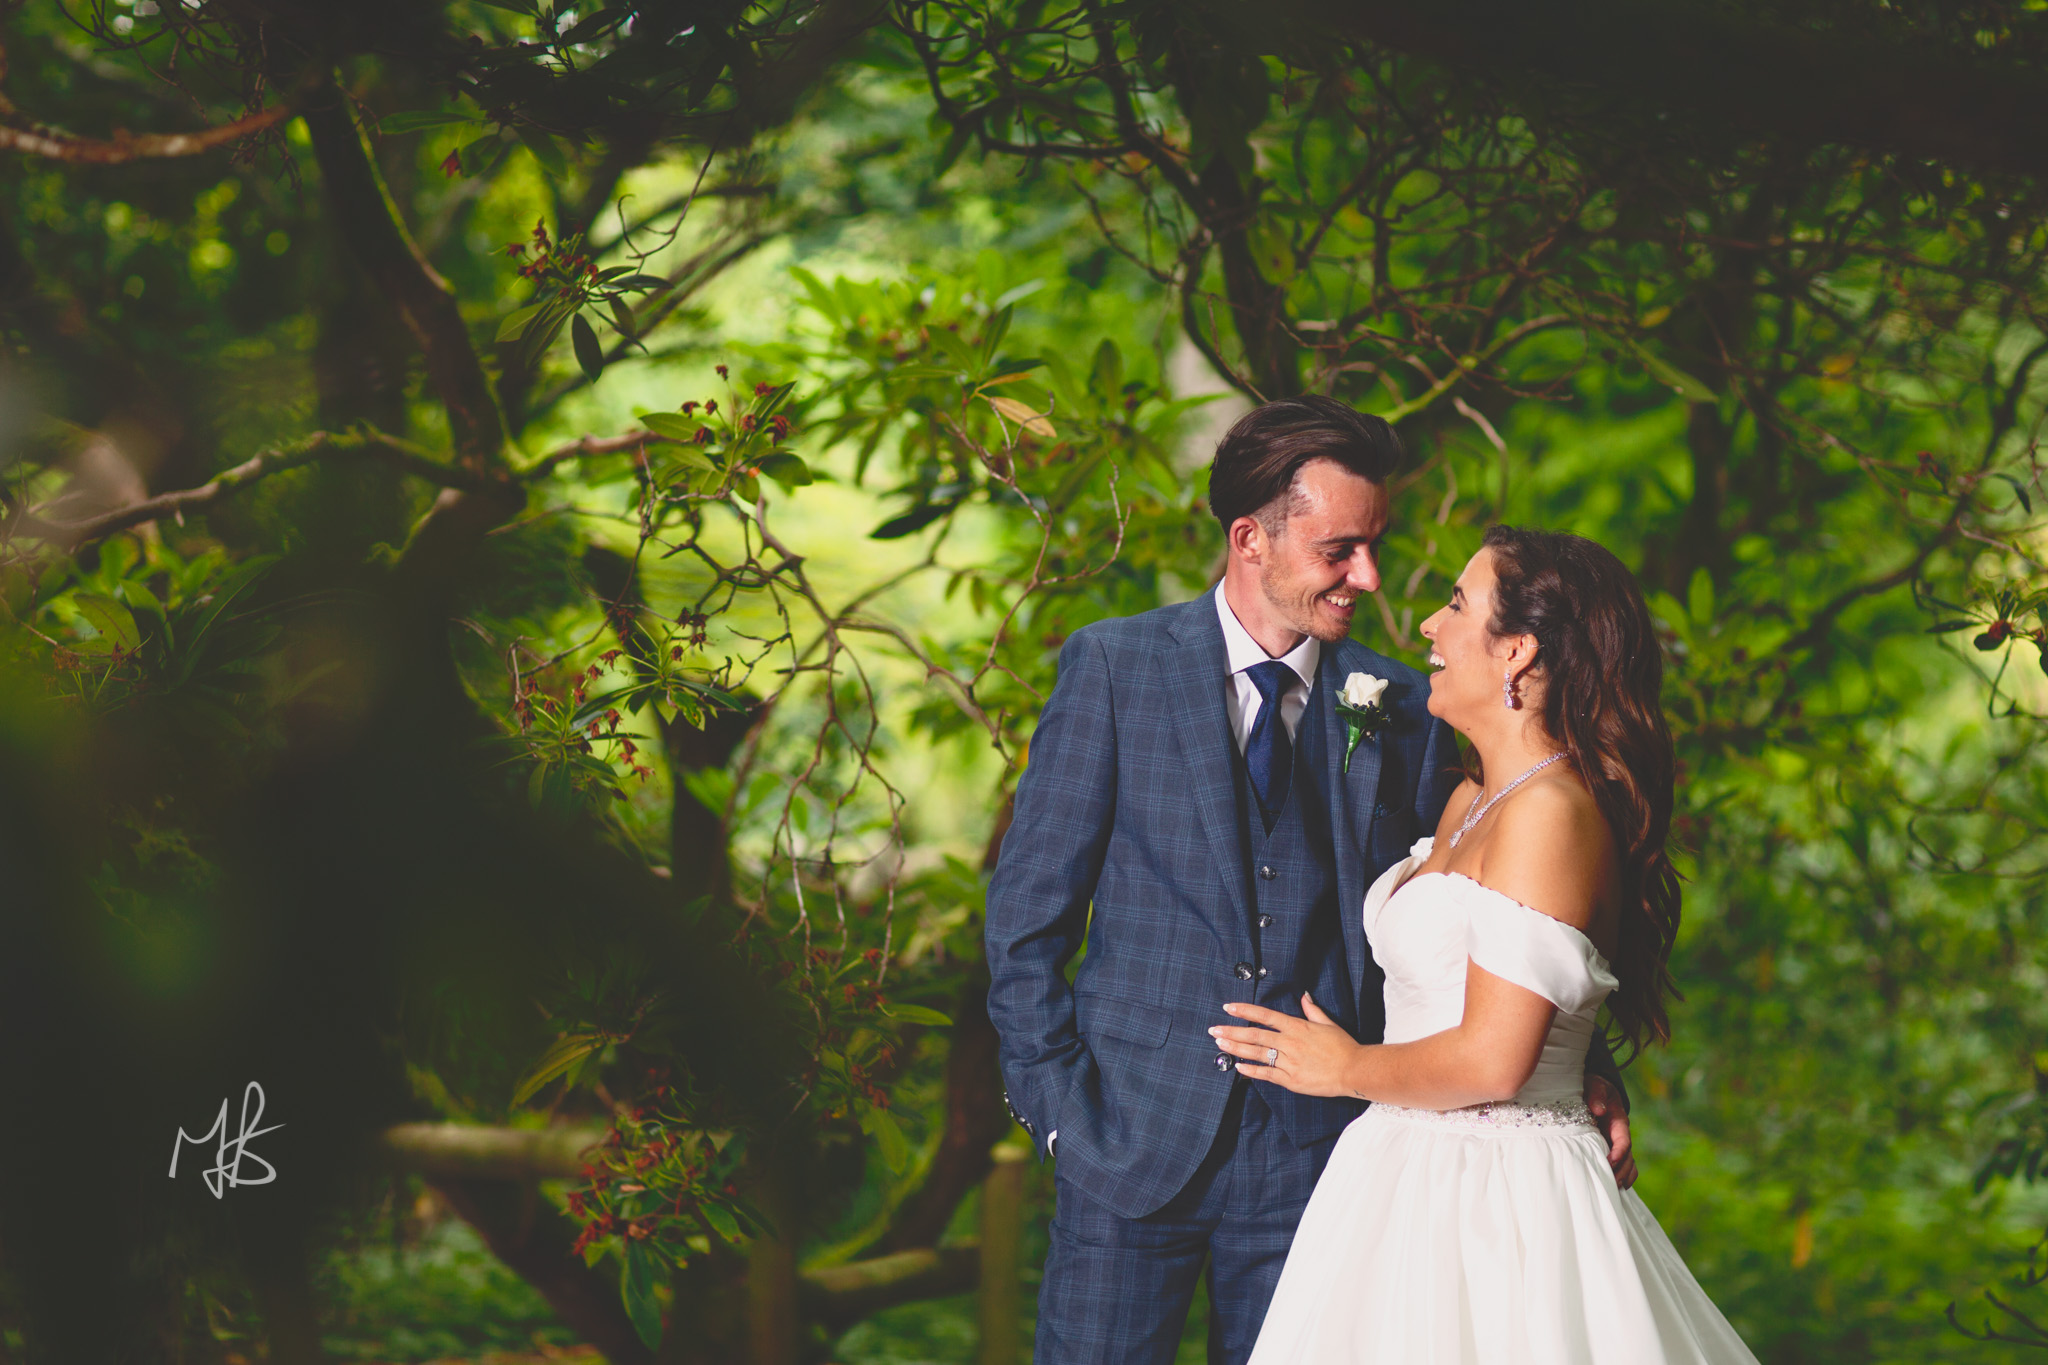 Northern_Ireland_wedding_photography_Larchfields_estate_Wedding_photography-1.jpg